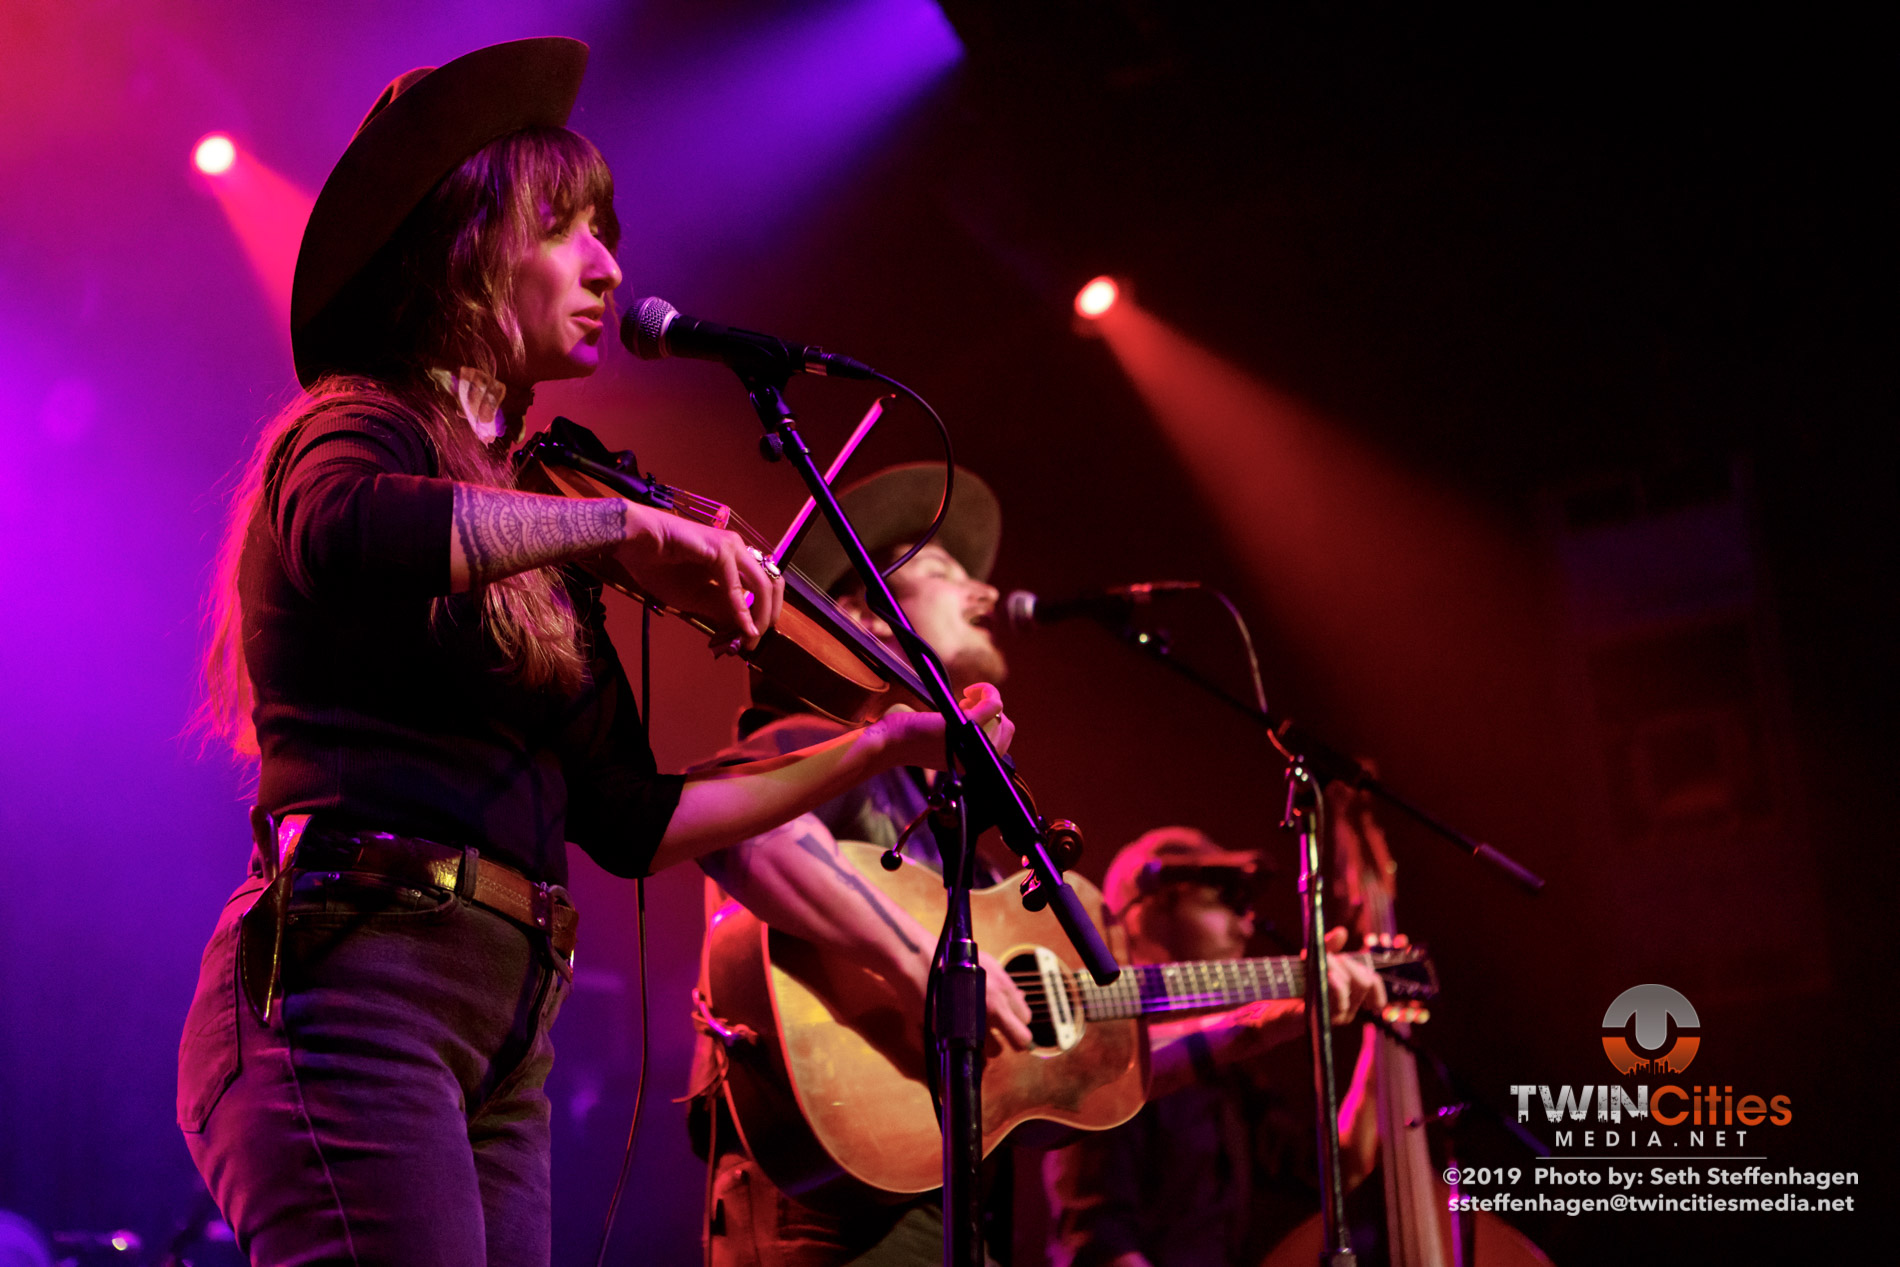 February 1, 2019 - Minneapolis, Minnesota, United States -  Lost Dog Street Band live in concert at First Avenue opening for The Devil Makes Three.  (Photo by Seth Steffenhagen/Steffenhagen Photography)